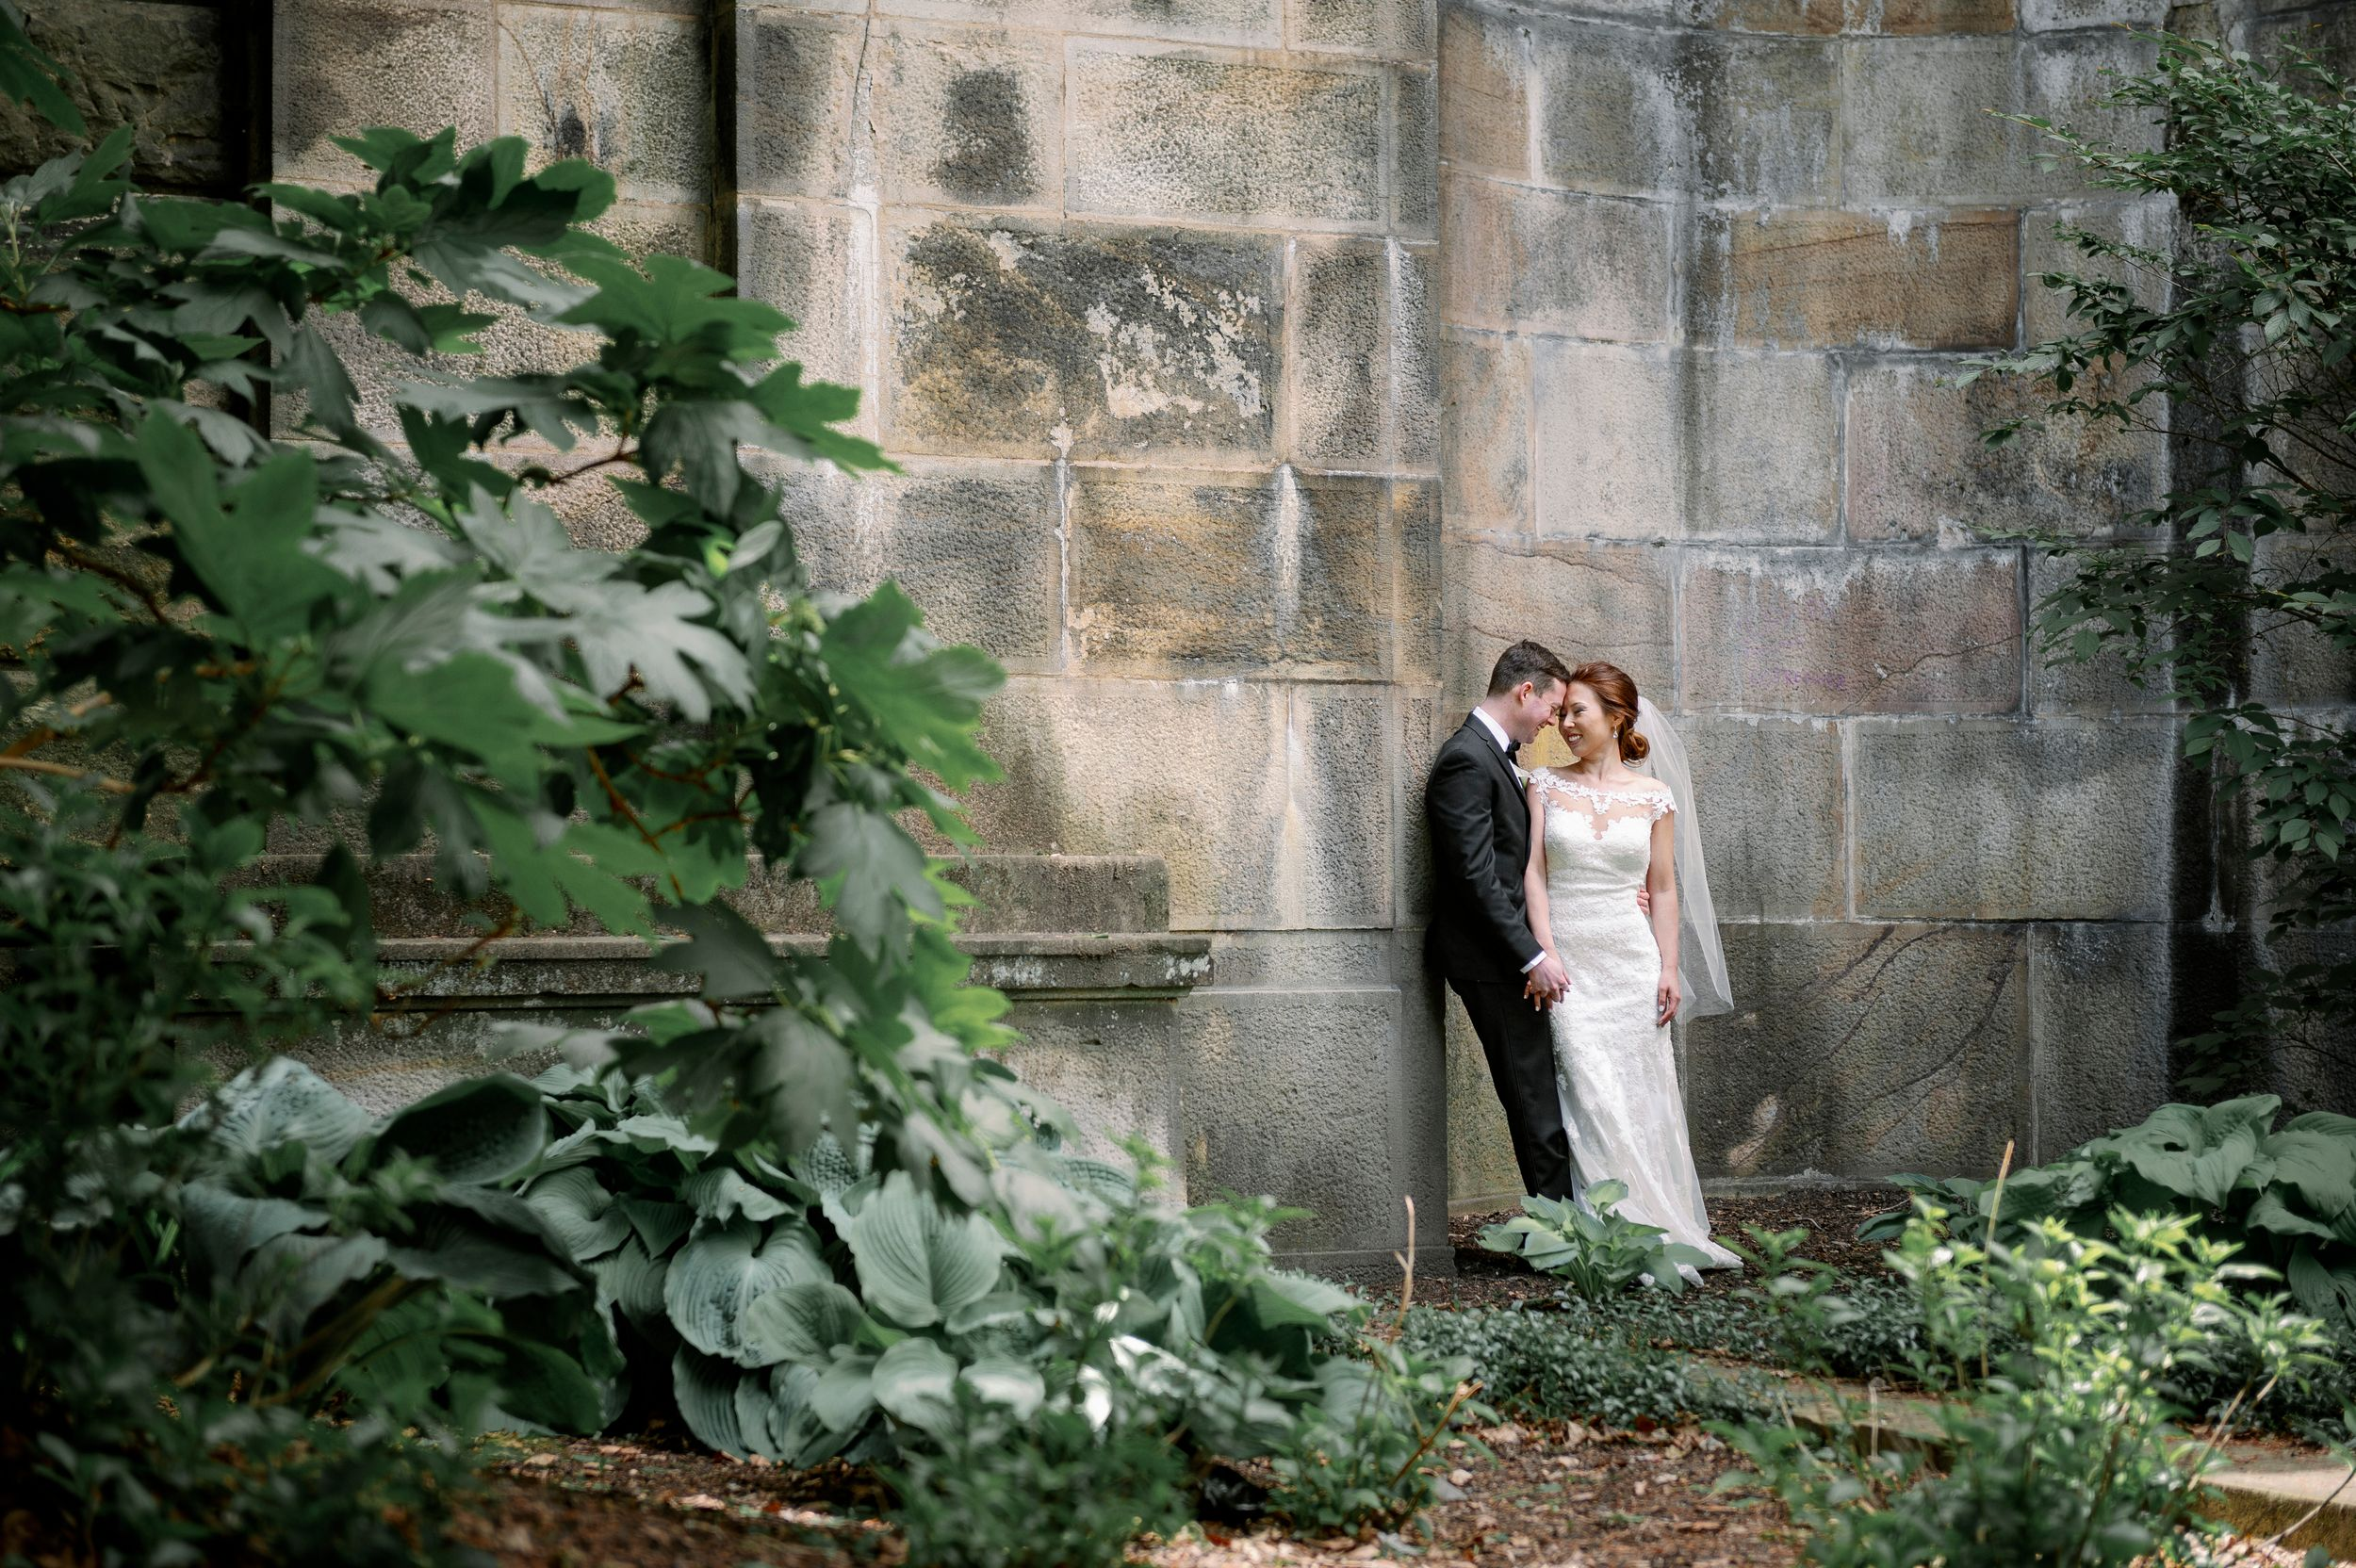 Intimate and dramatic wedding photo of bride and groom nuzzling at the Philadelphia Art Museum.